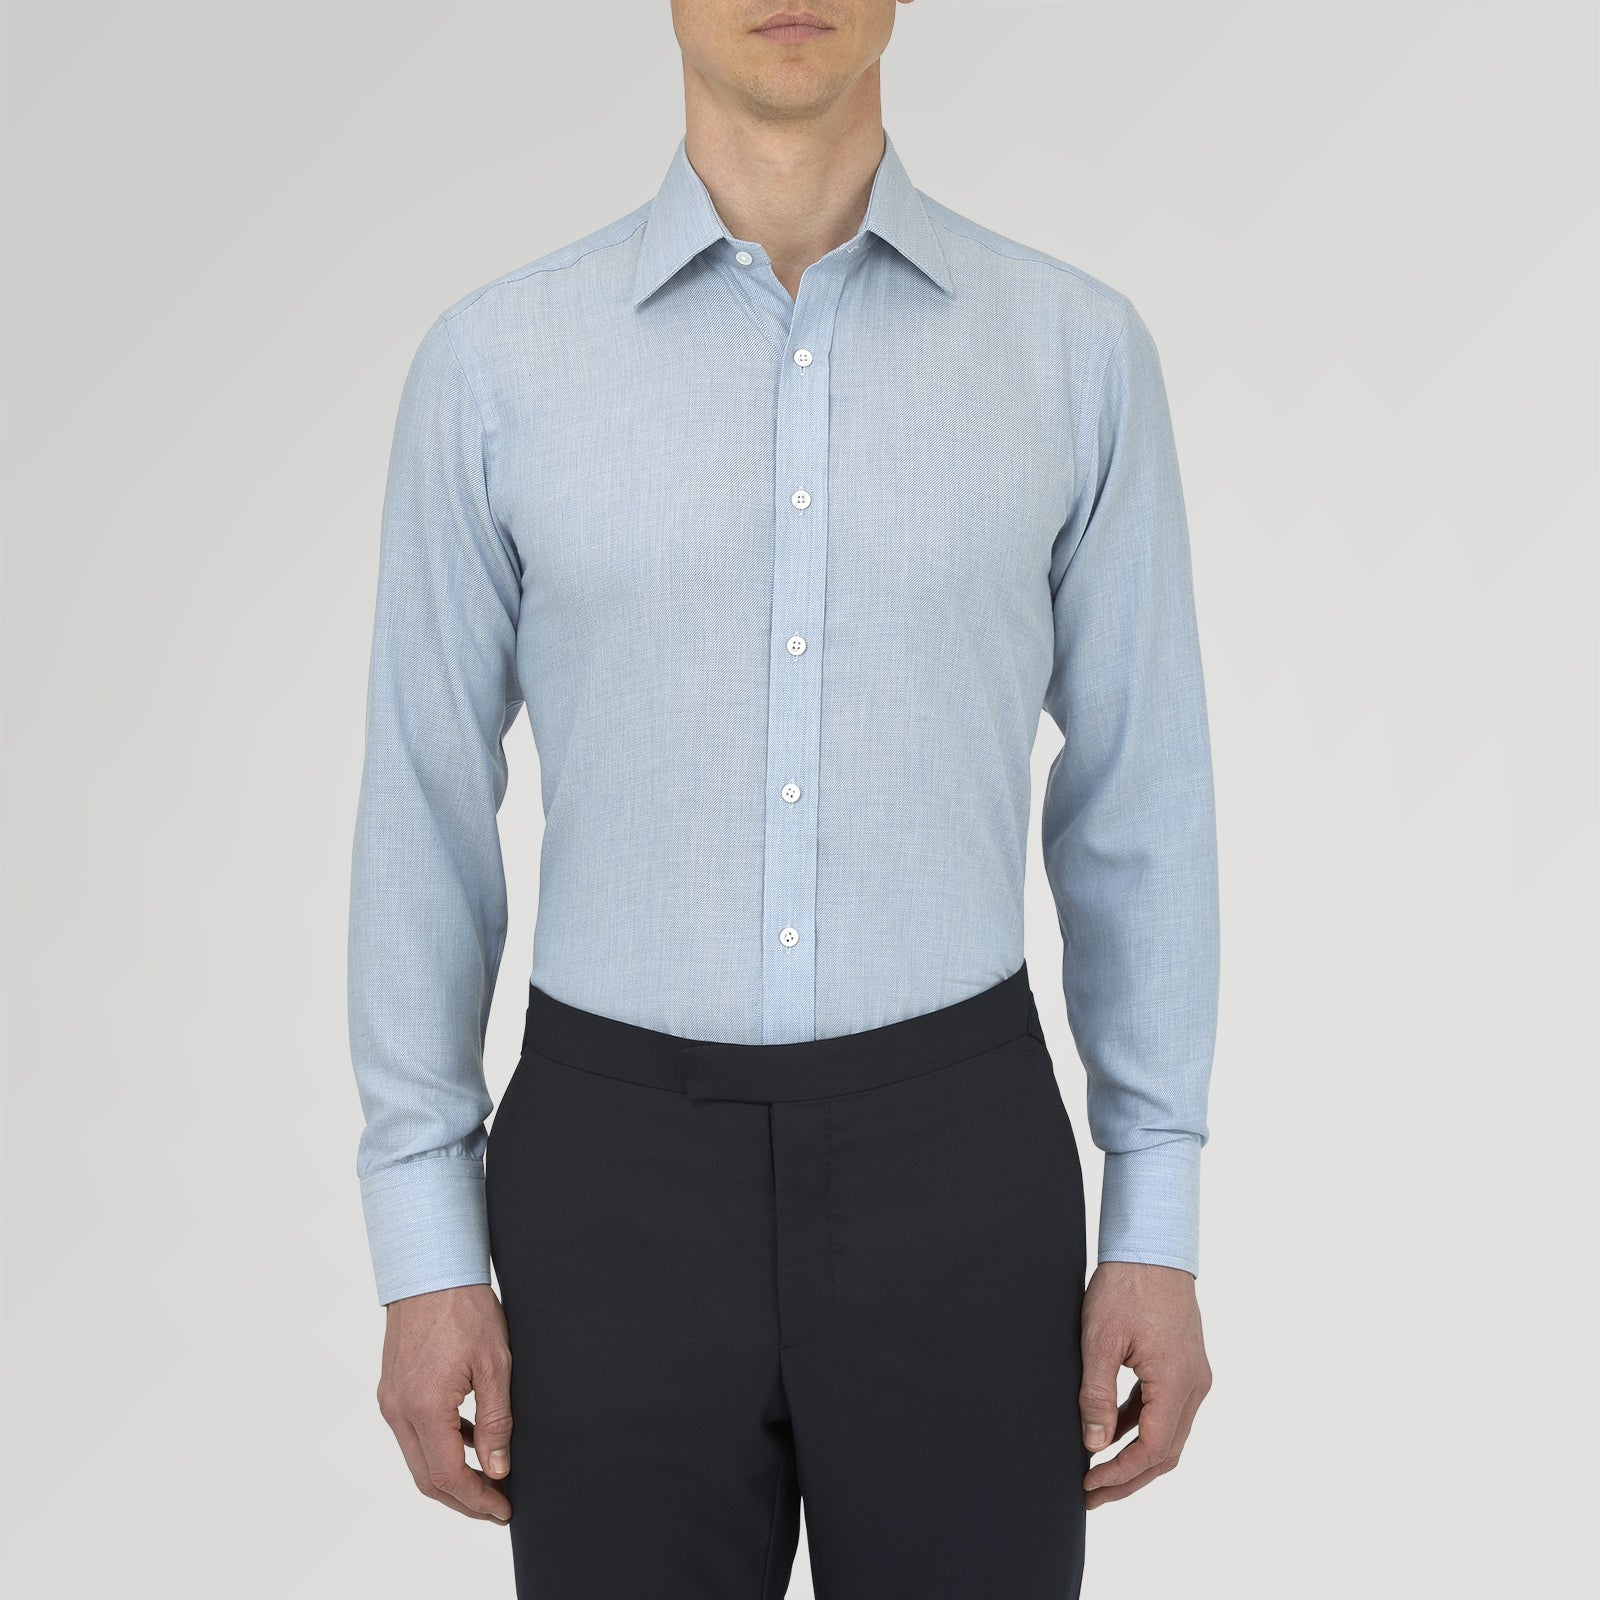 Blue Cashmere Blend Shirt with T&A Collar and 3-Button Cuffs